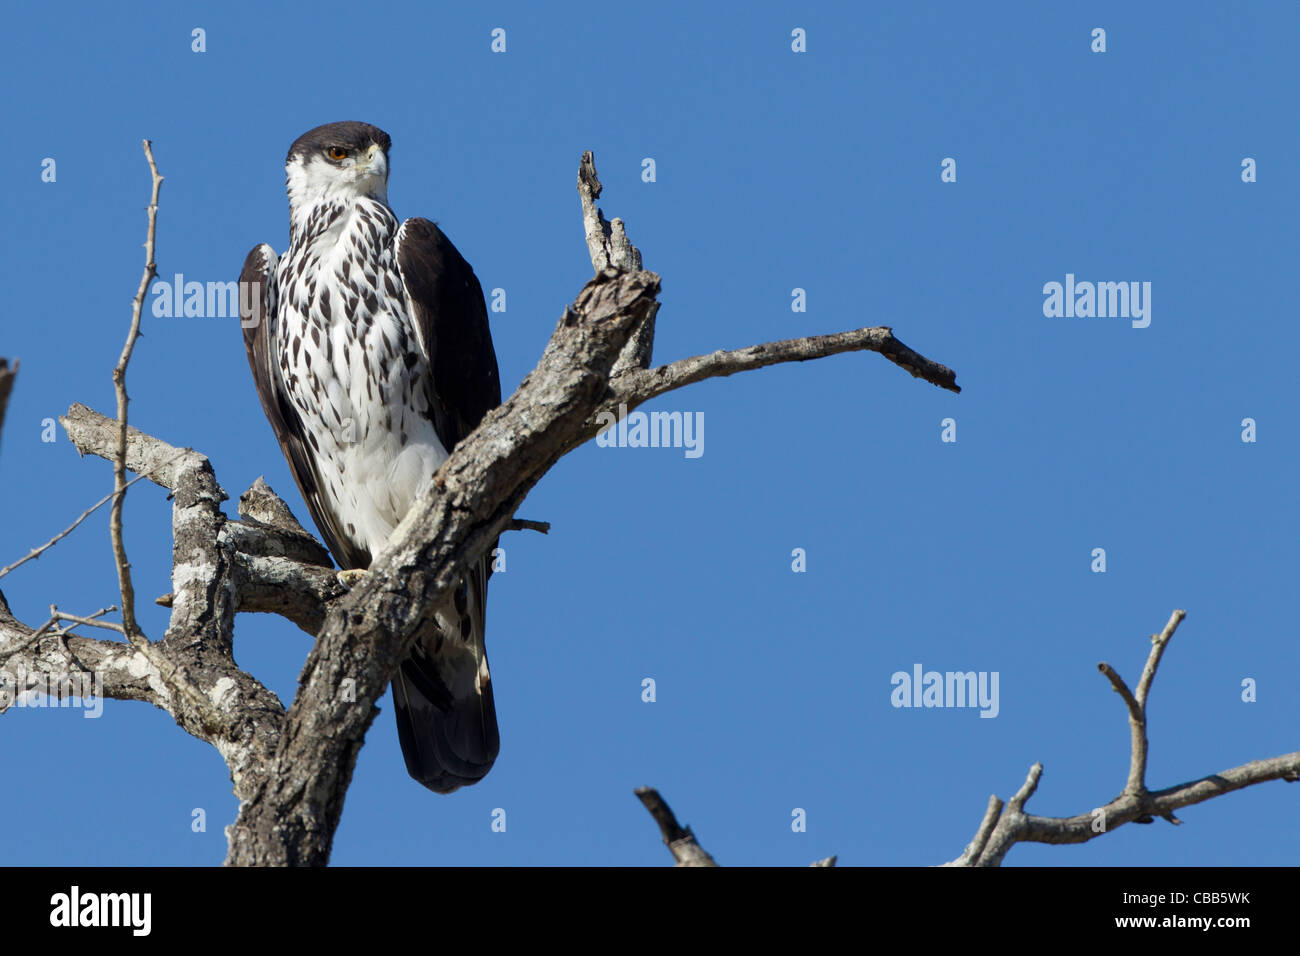 African Hawk-Eagle(Aquila spilogastra) With an amazing blue background. - Stock Image